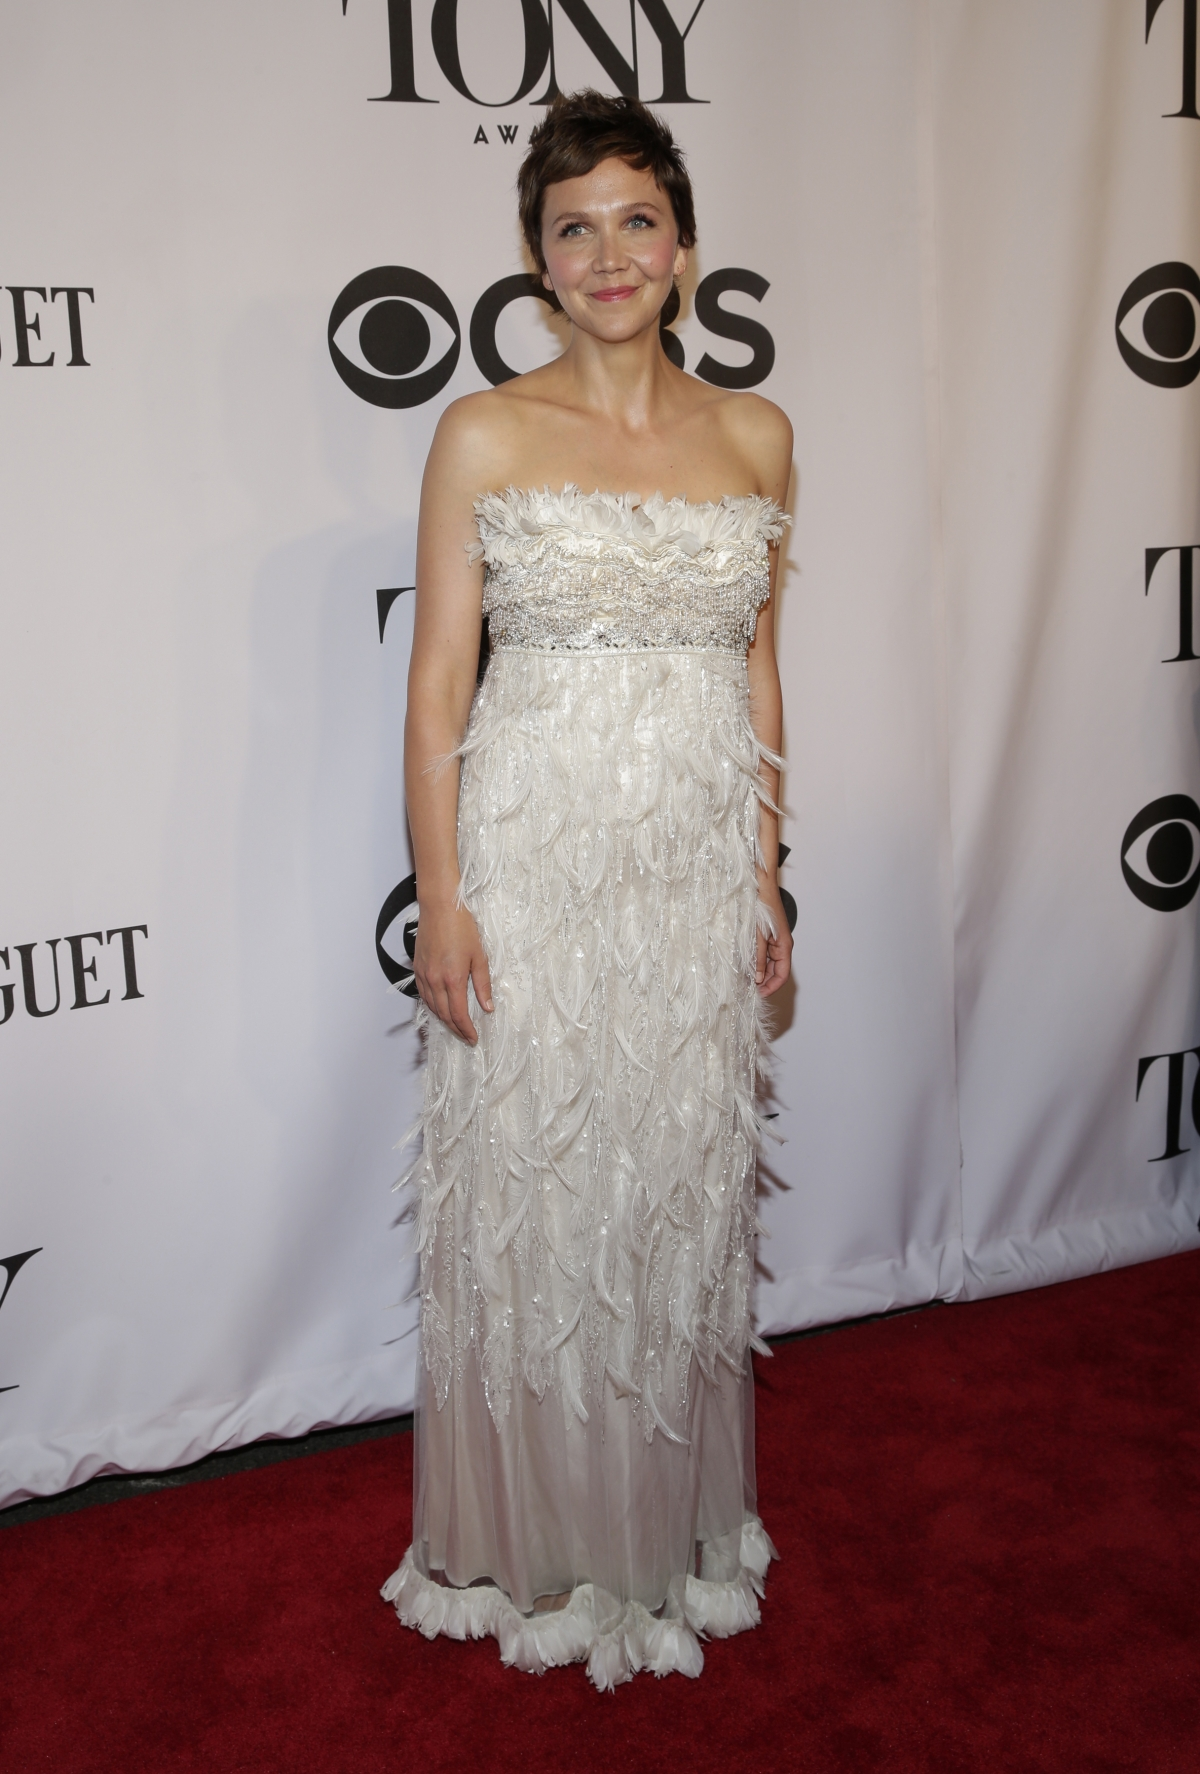 Actress Maggie Gyllenhaal arrives for the American Theatre Wing's 68th annual Tony Awards at Radio City Music Hall in New York, June 8, 2014.